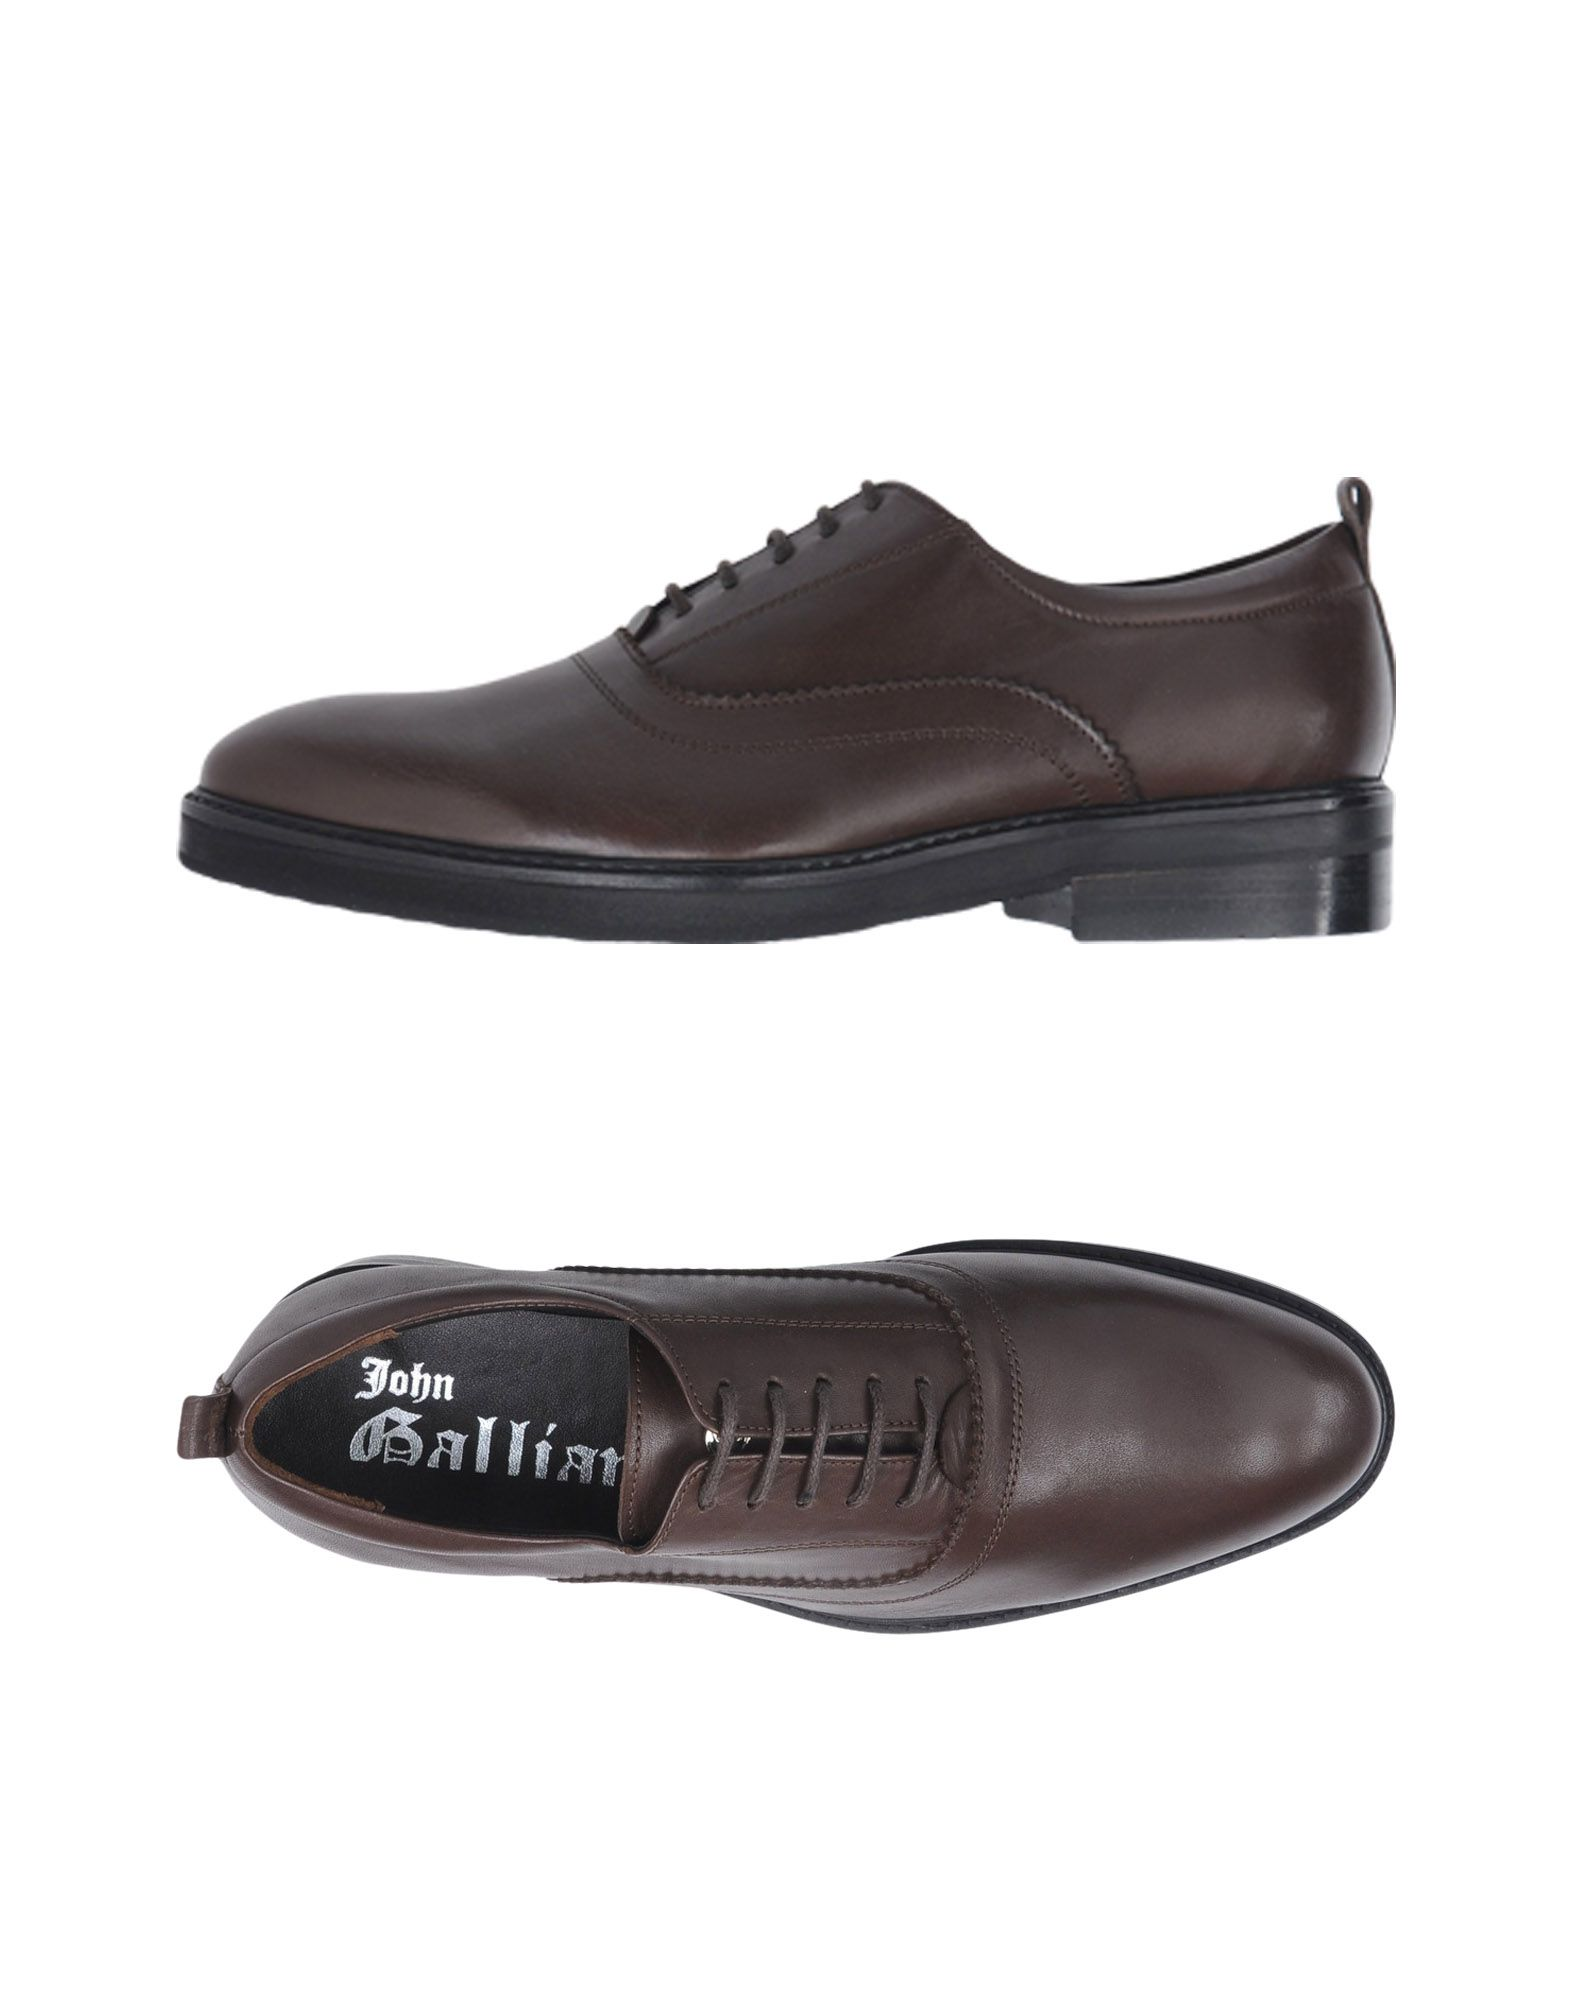 Chaussures À Lacets John Galliano Homme - Chaussures À Lacets John Galliano sur